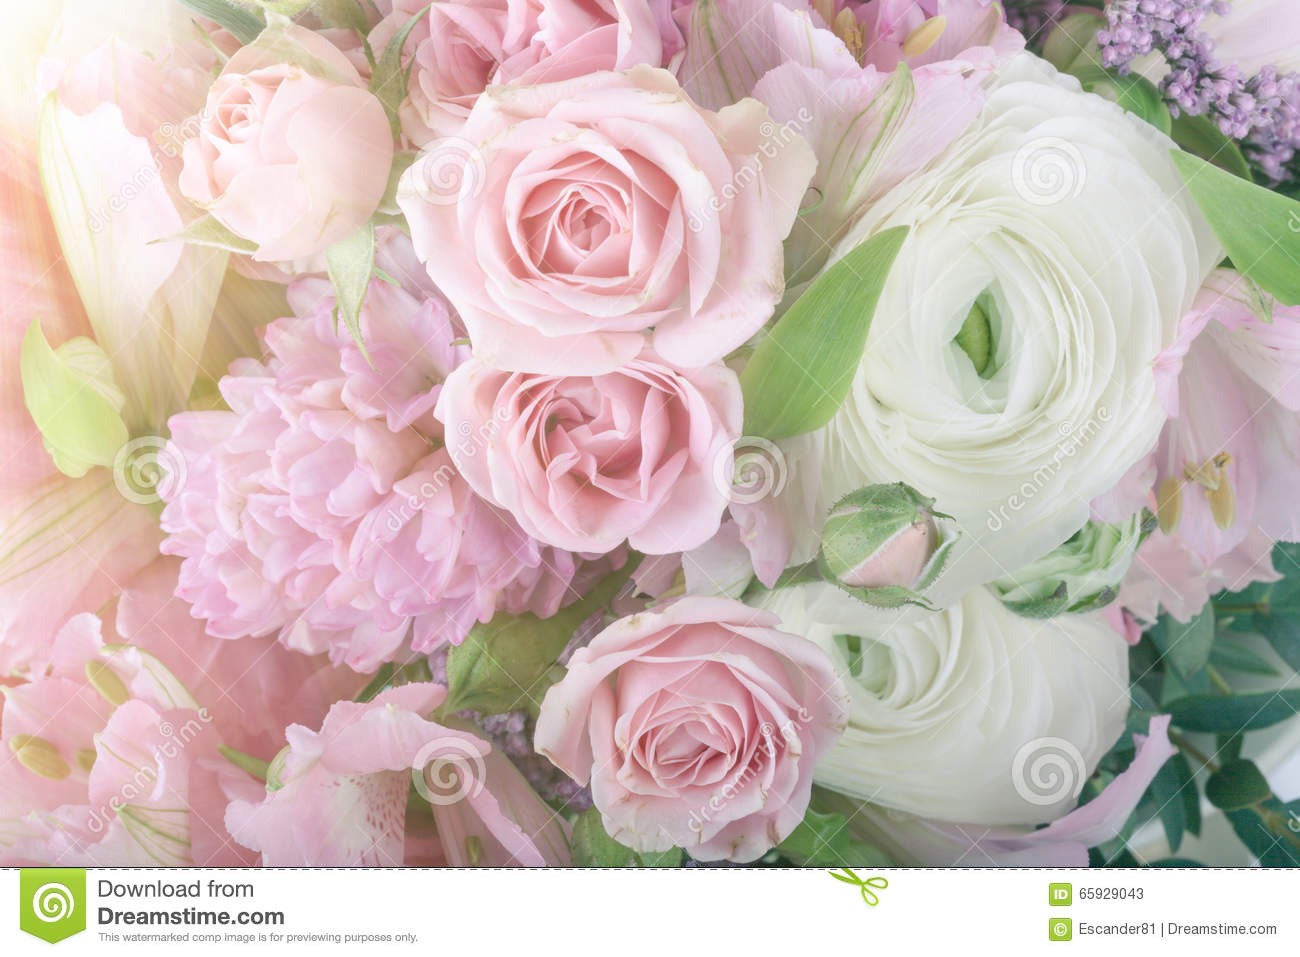 Amazing flower bouquet arrangement close up stock image image of download amazing flower bouquet arrangement close up stock image image of floral arrangement izmirmasajfo